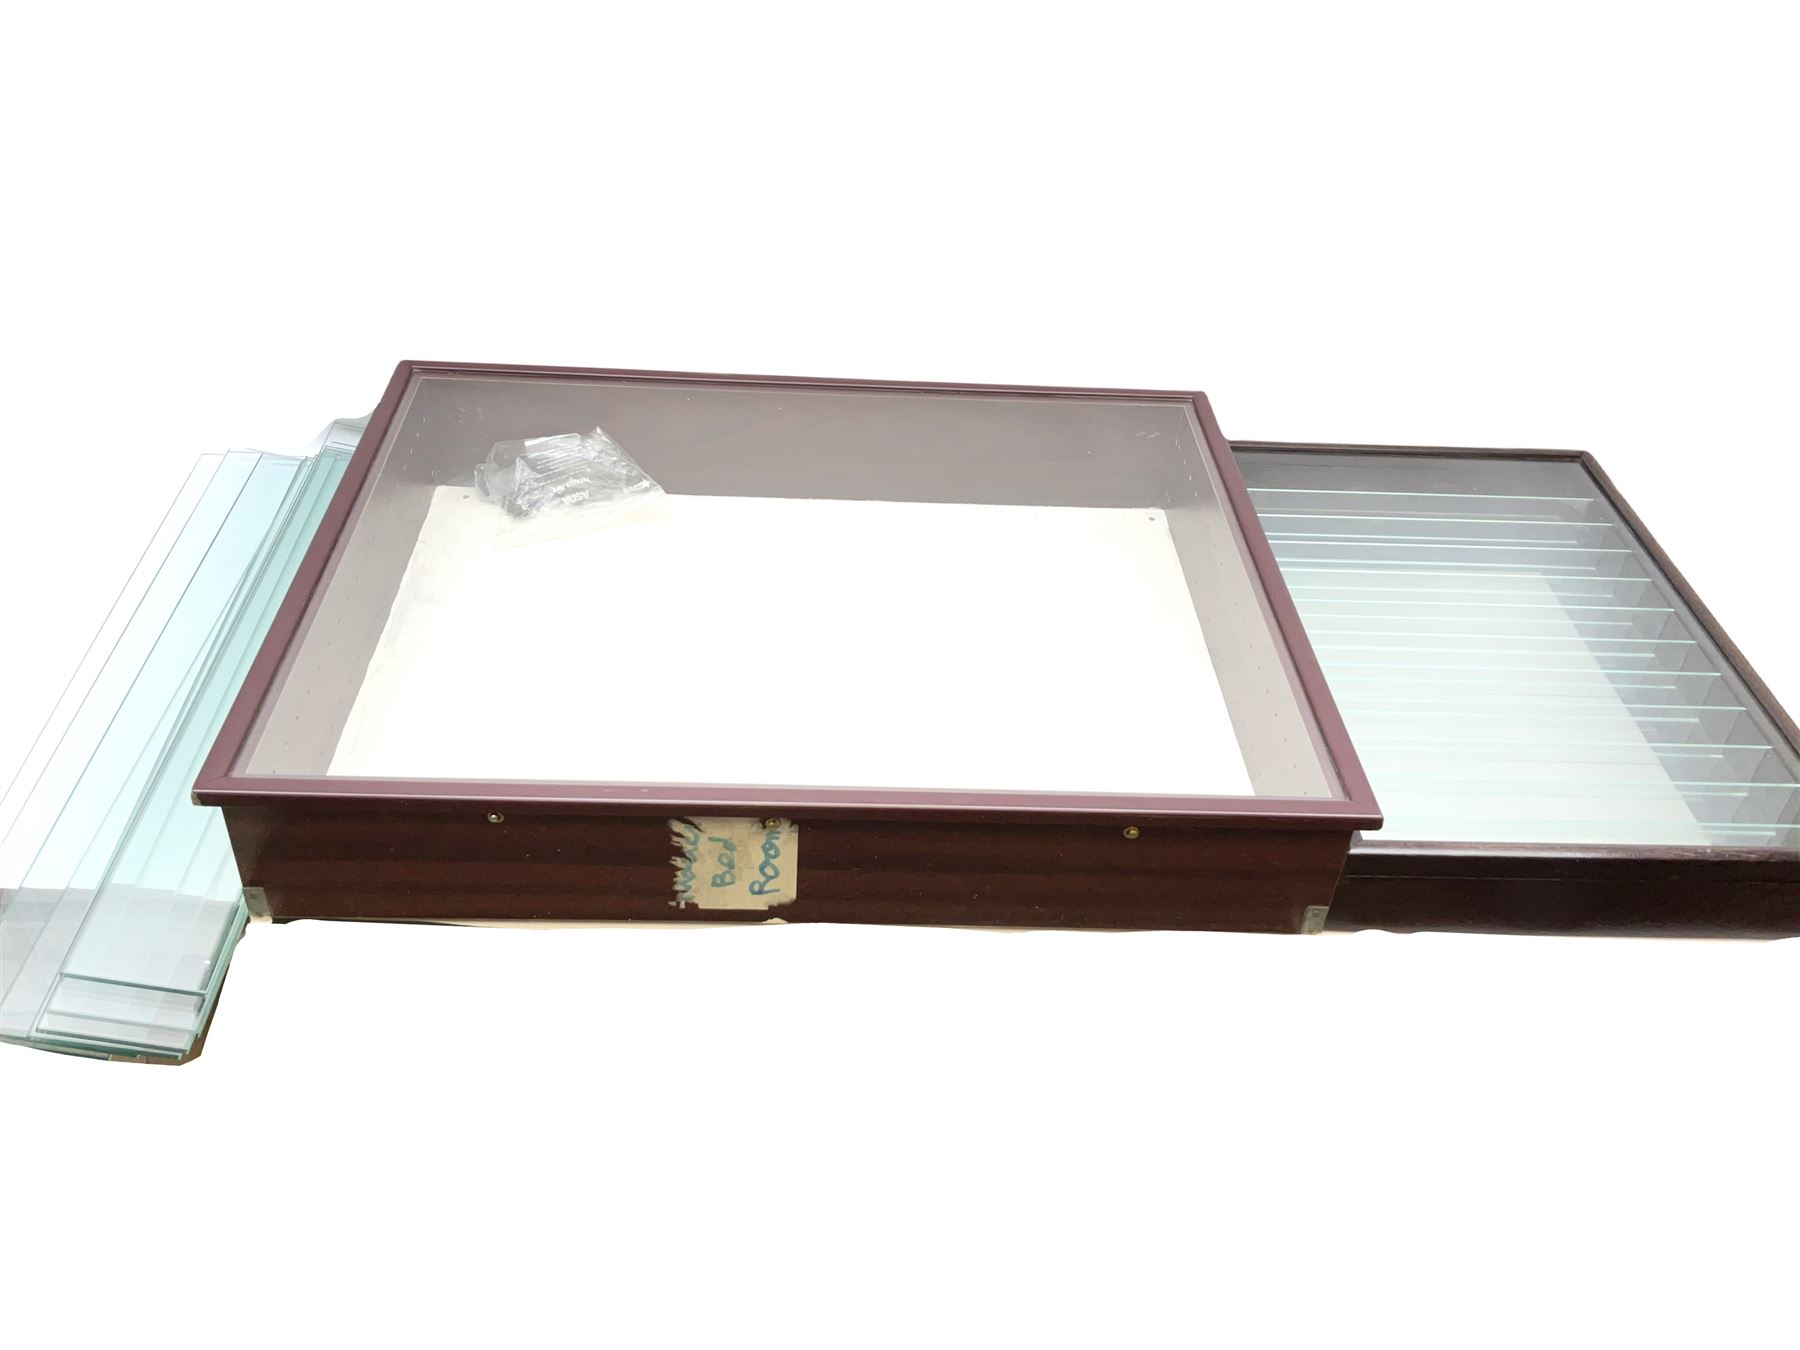 Die-cast model wall mounting display cabinet with mahogany finish and hinged glass door enclosing ei